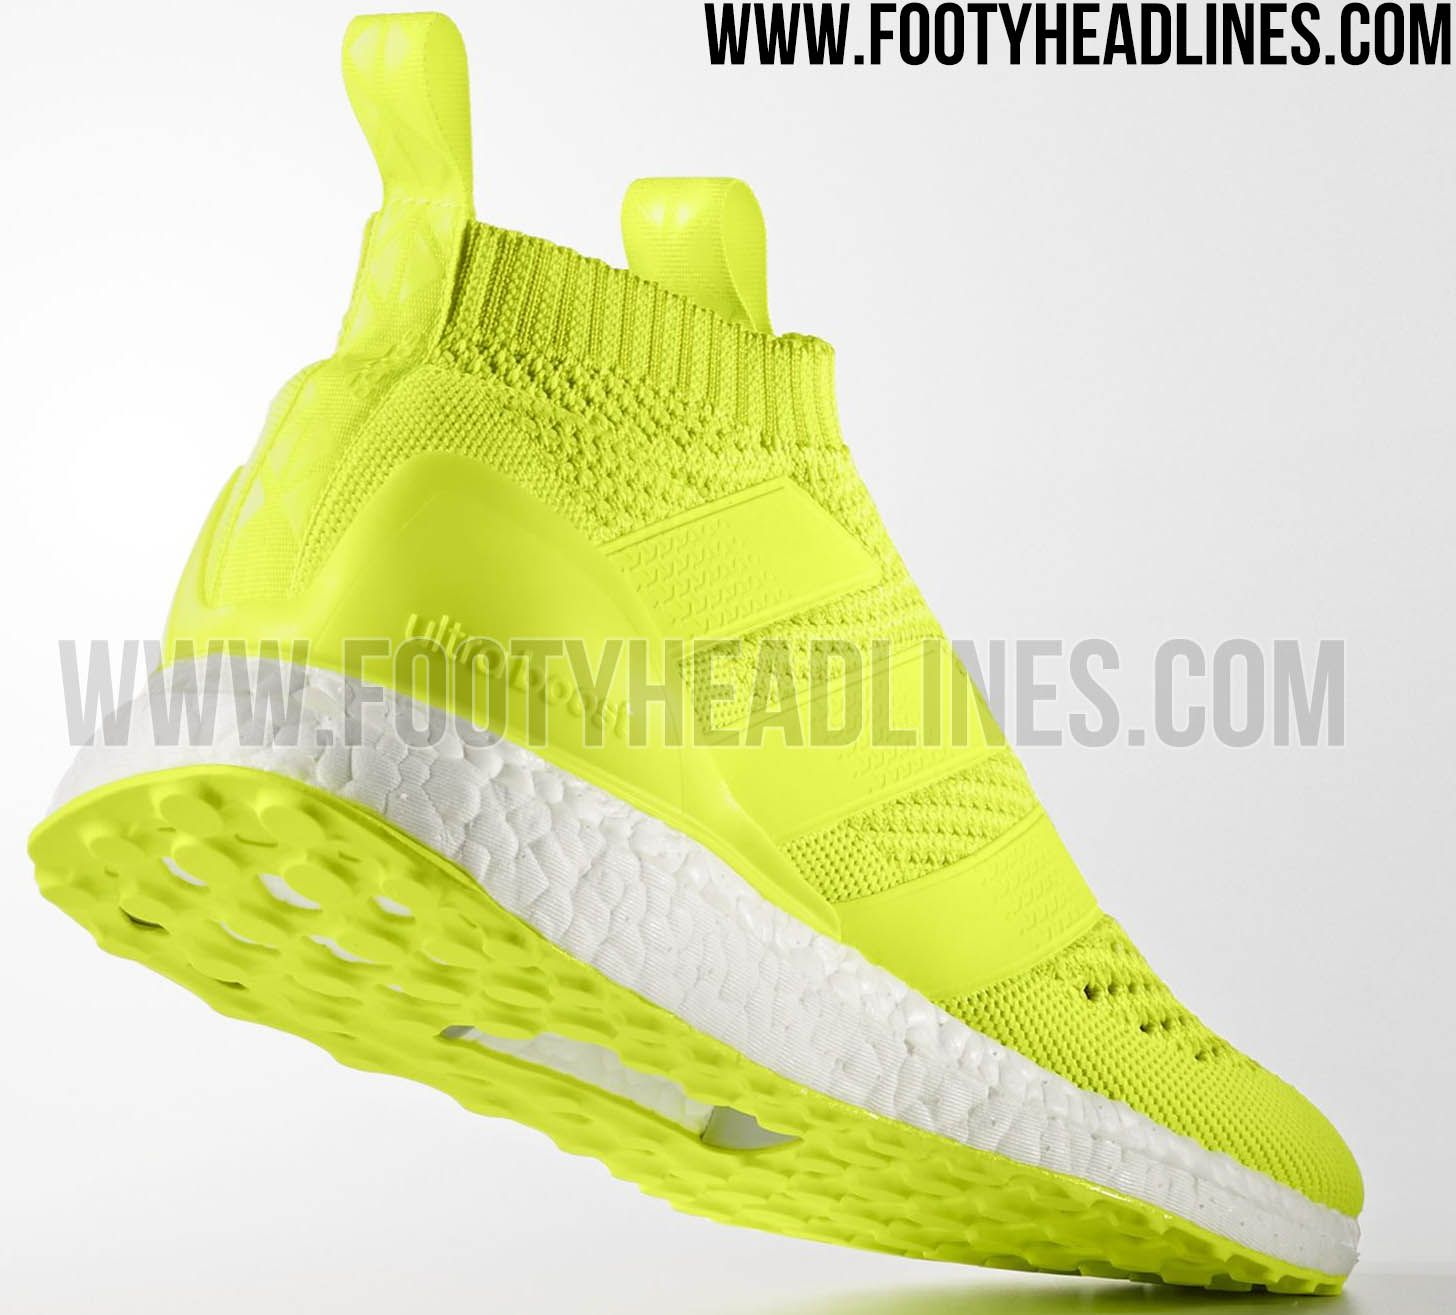 9bcdc9f6836 ... denmark the adidas ace 16 purecontrol ultraboost shoes bring the  laceless adidas ace purecontrol soccer boots